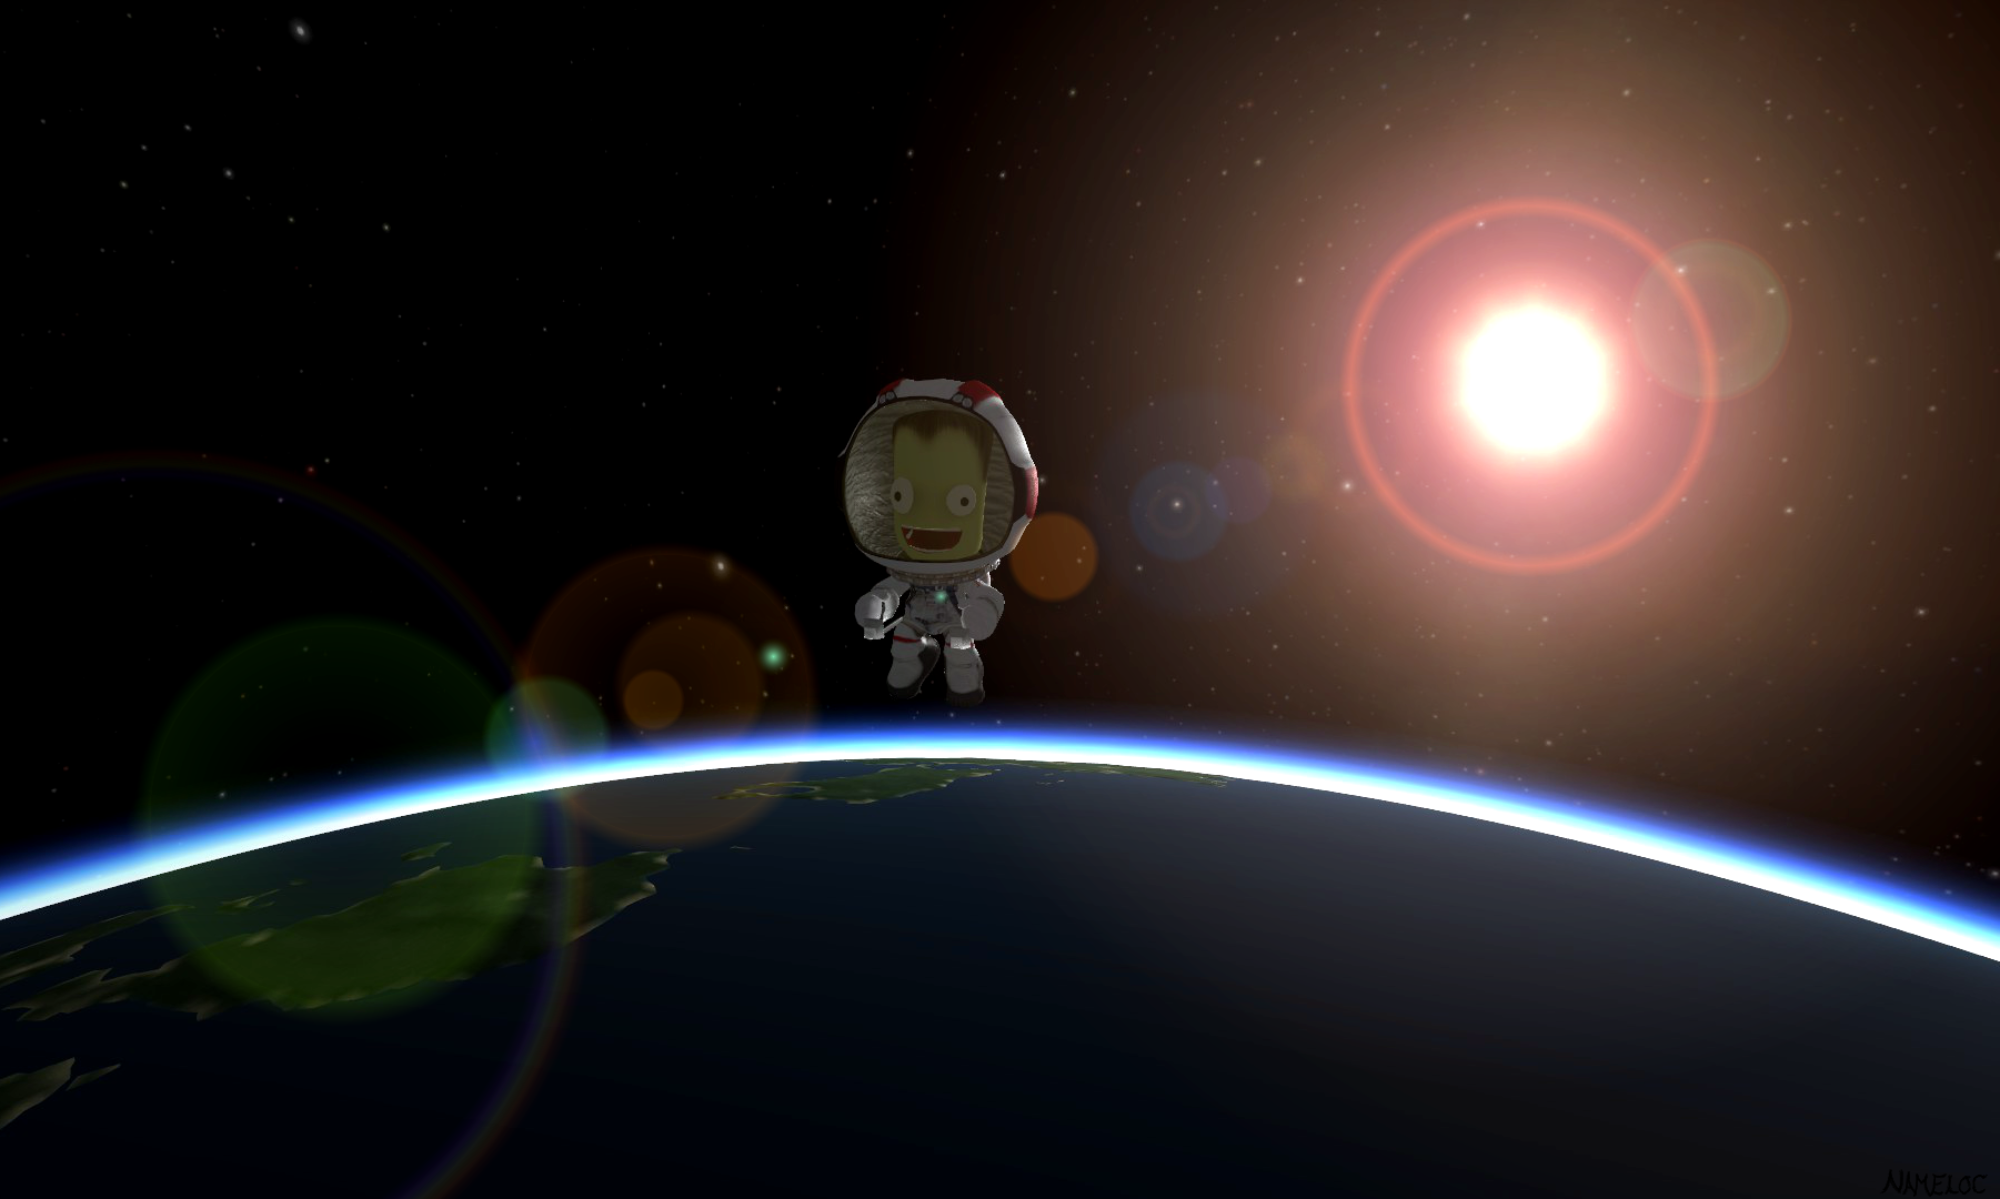 Kerbal Space Program - Magyar űrprogram